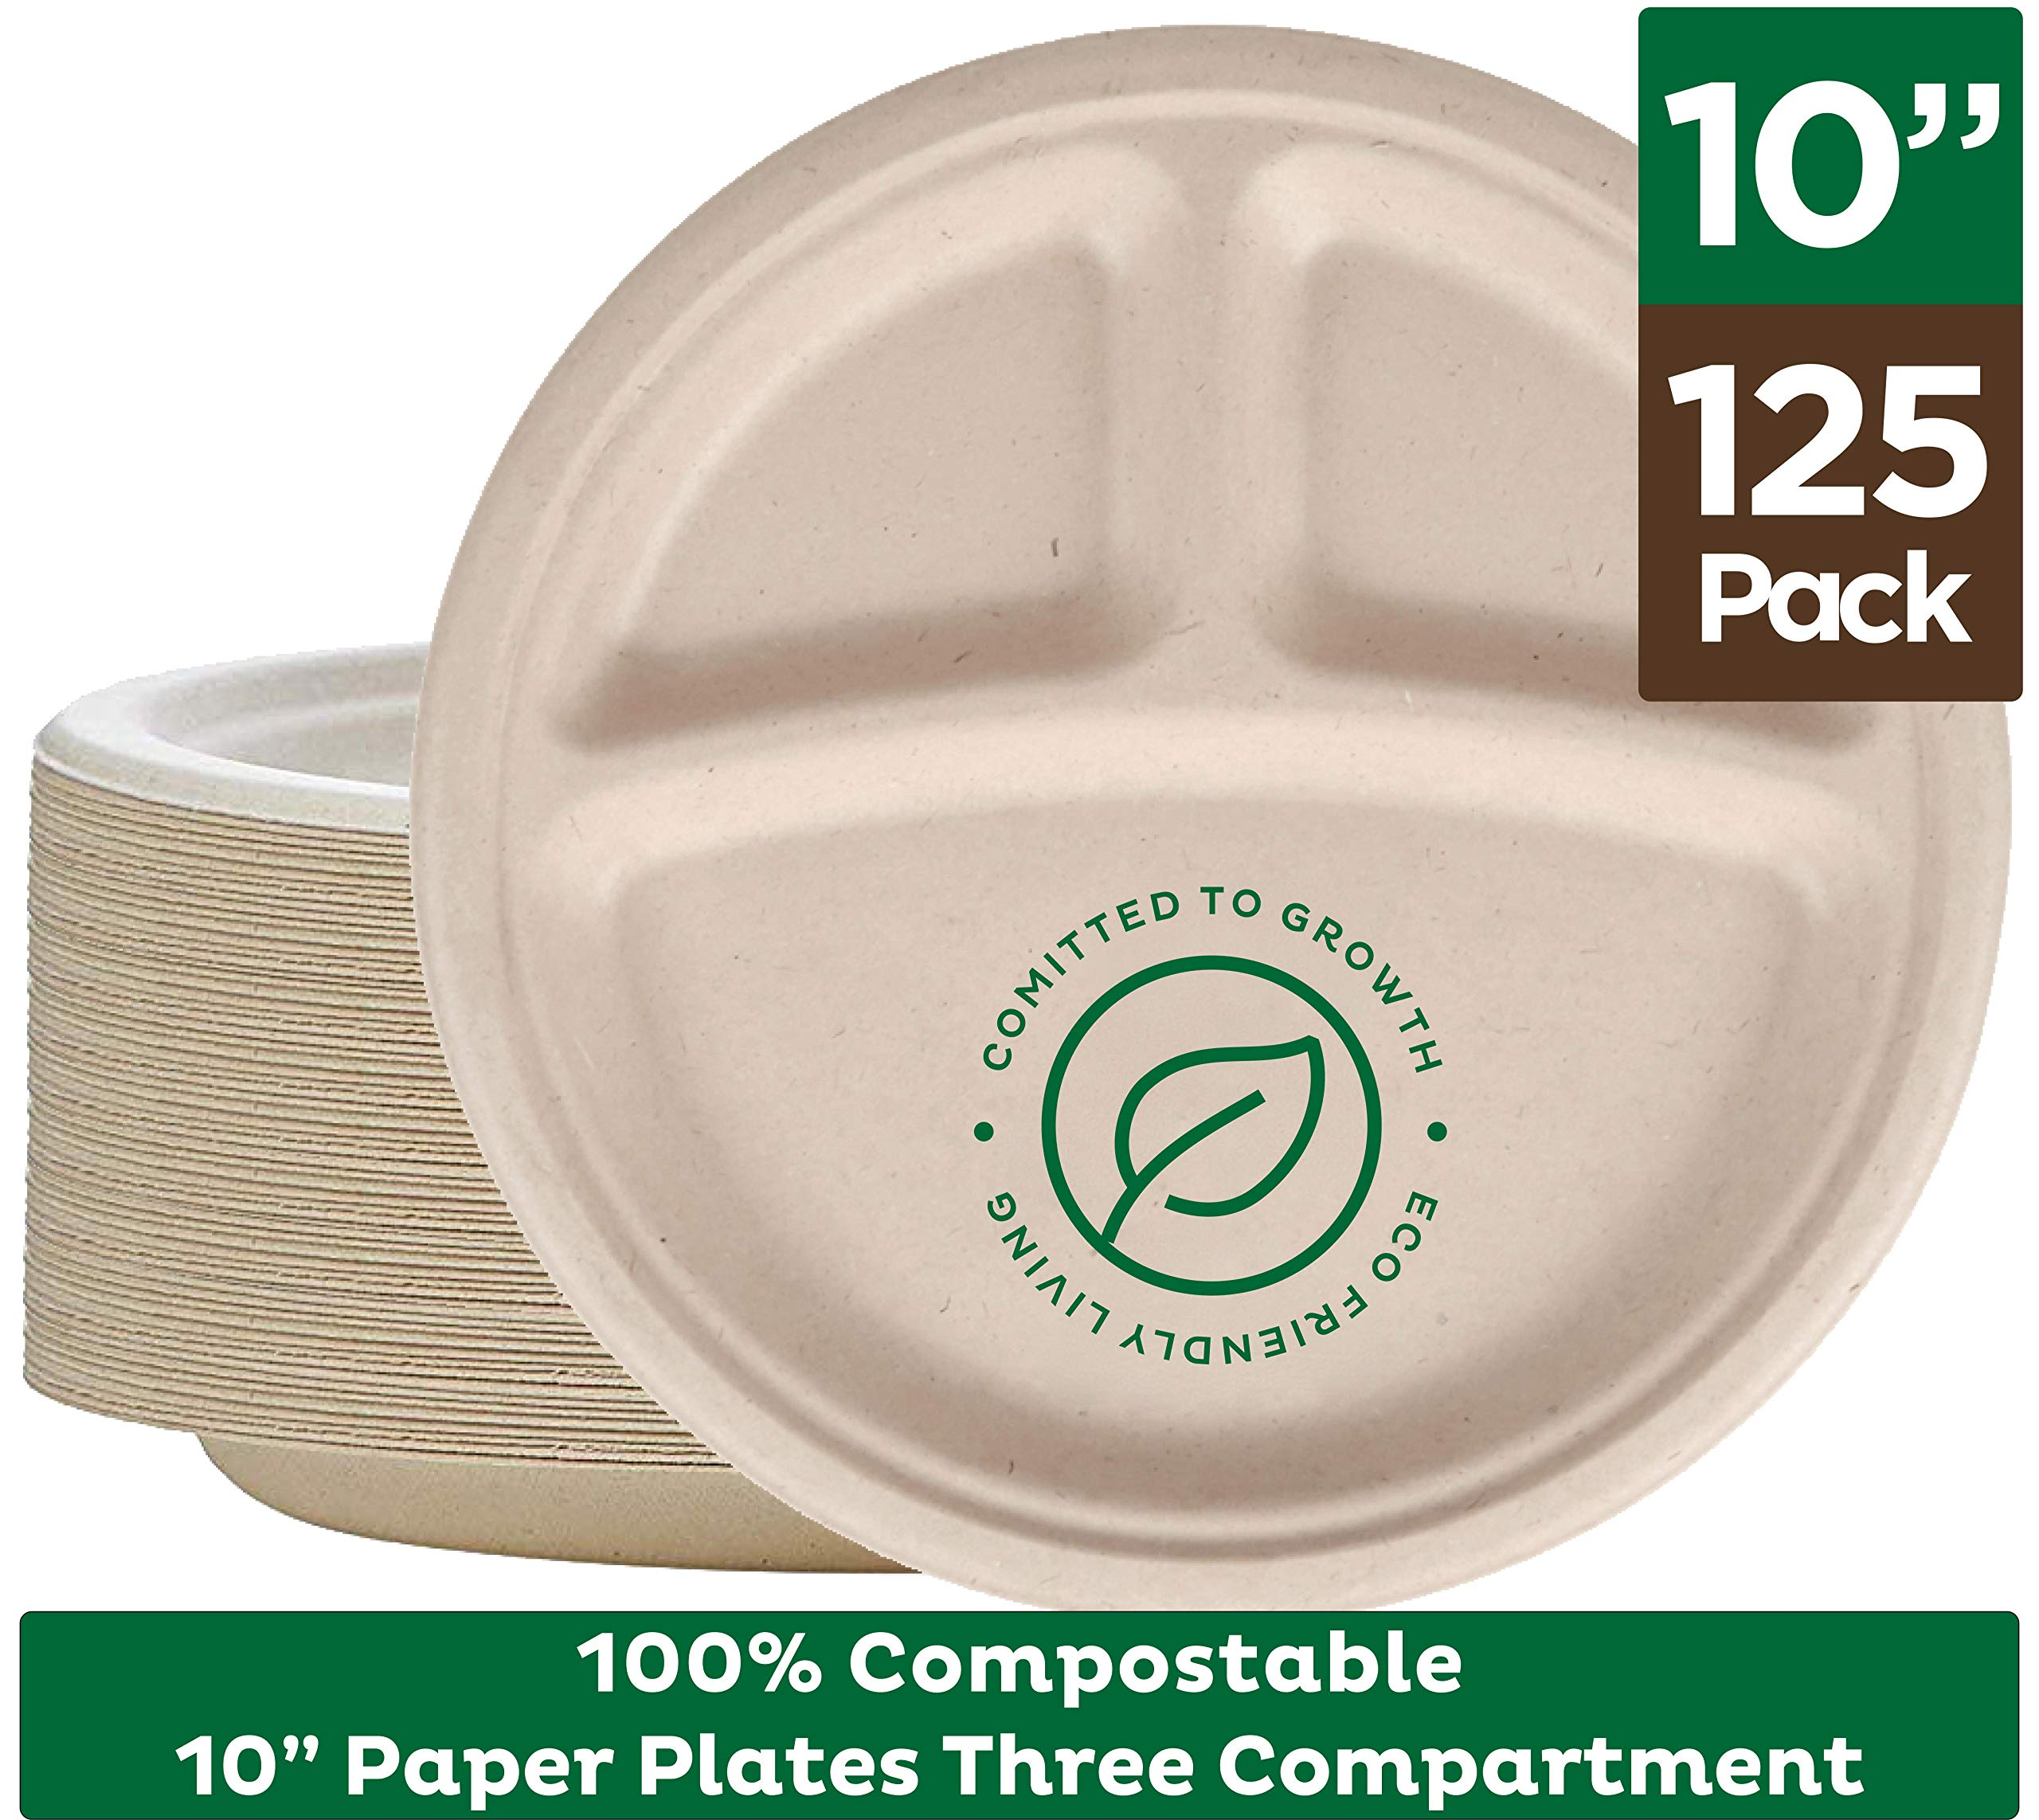 100% Compostable Paper Plates [10 inch - 125-Pack] 3 Compartment Disposable Plates Heavy-Duty Quality, Natural Bagasse Eco-Friendly Made of Sugar Cane & Wheat Straw Fibers, 10'' Biodegradable Plates